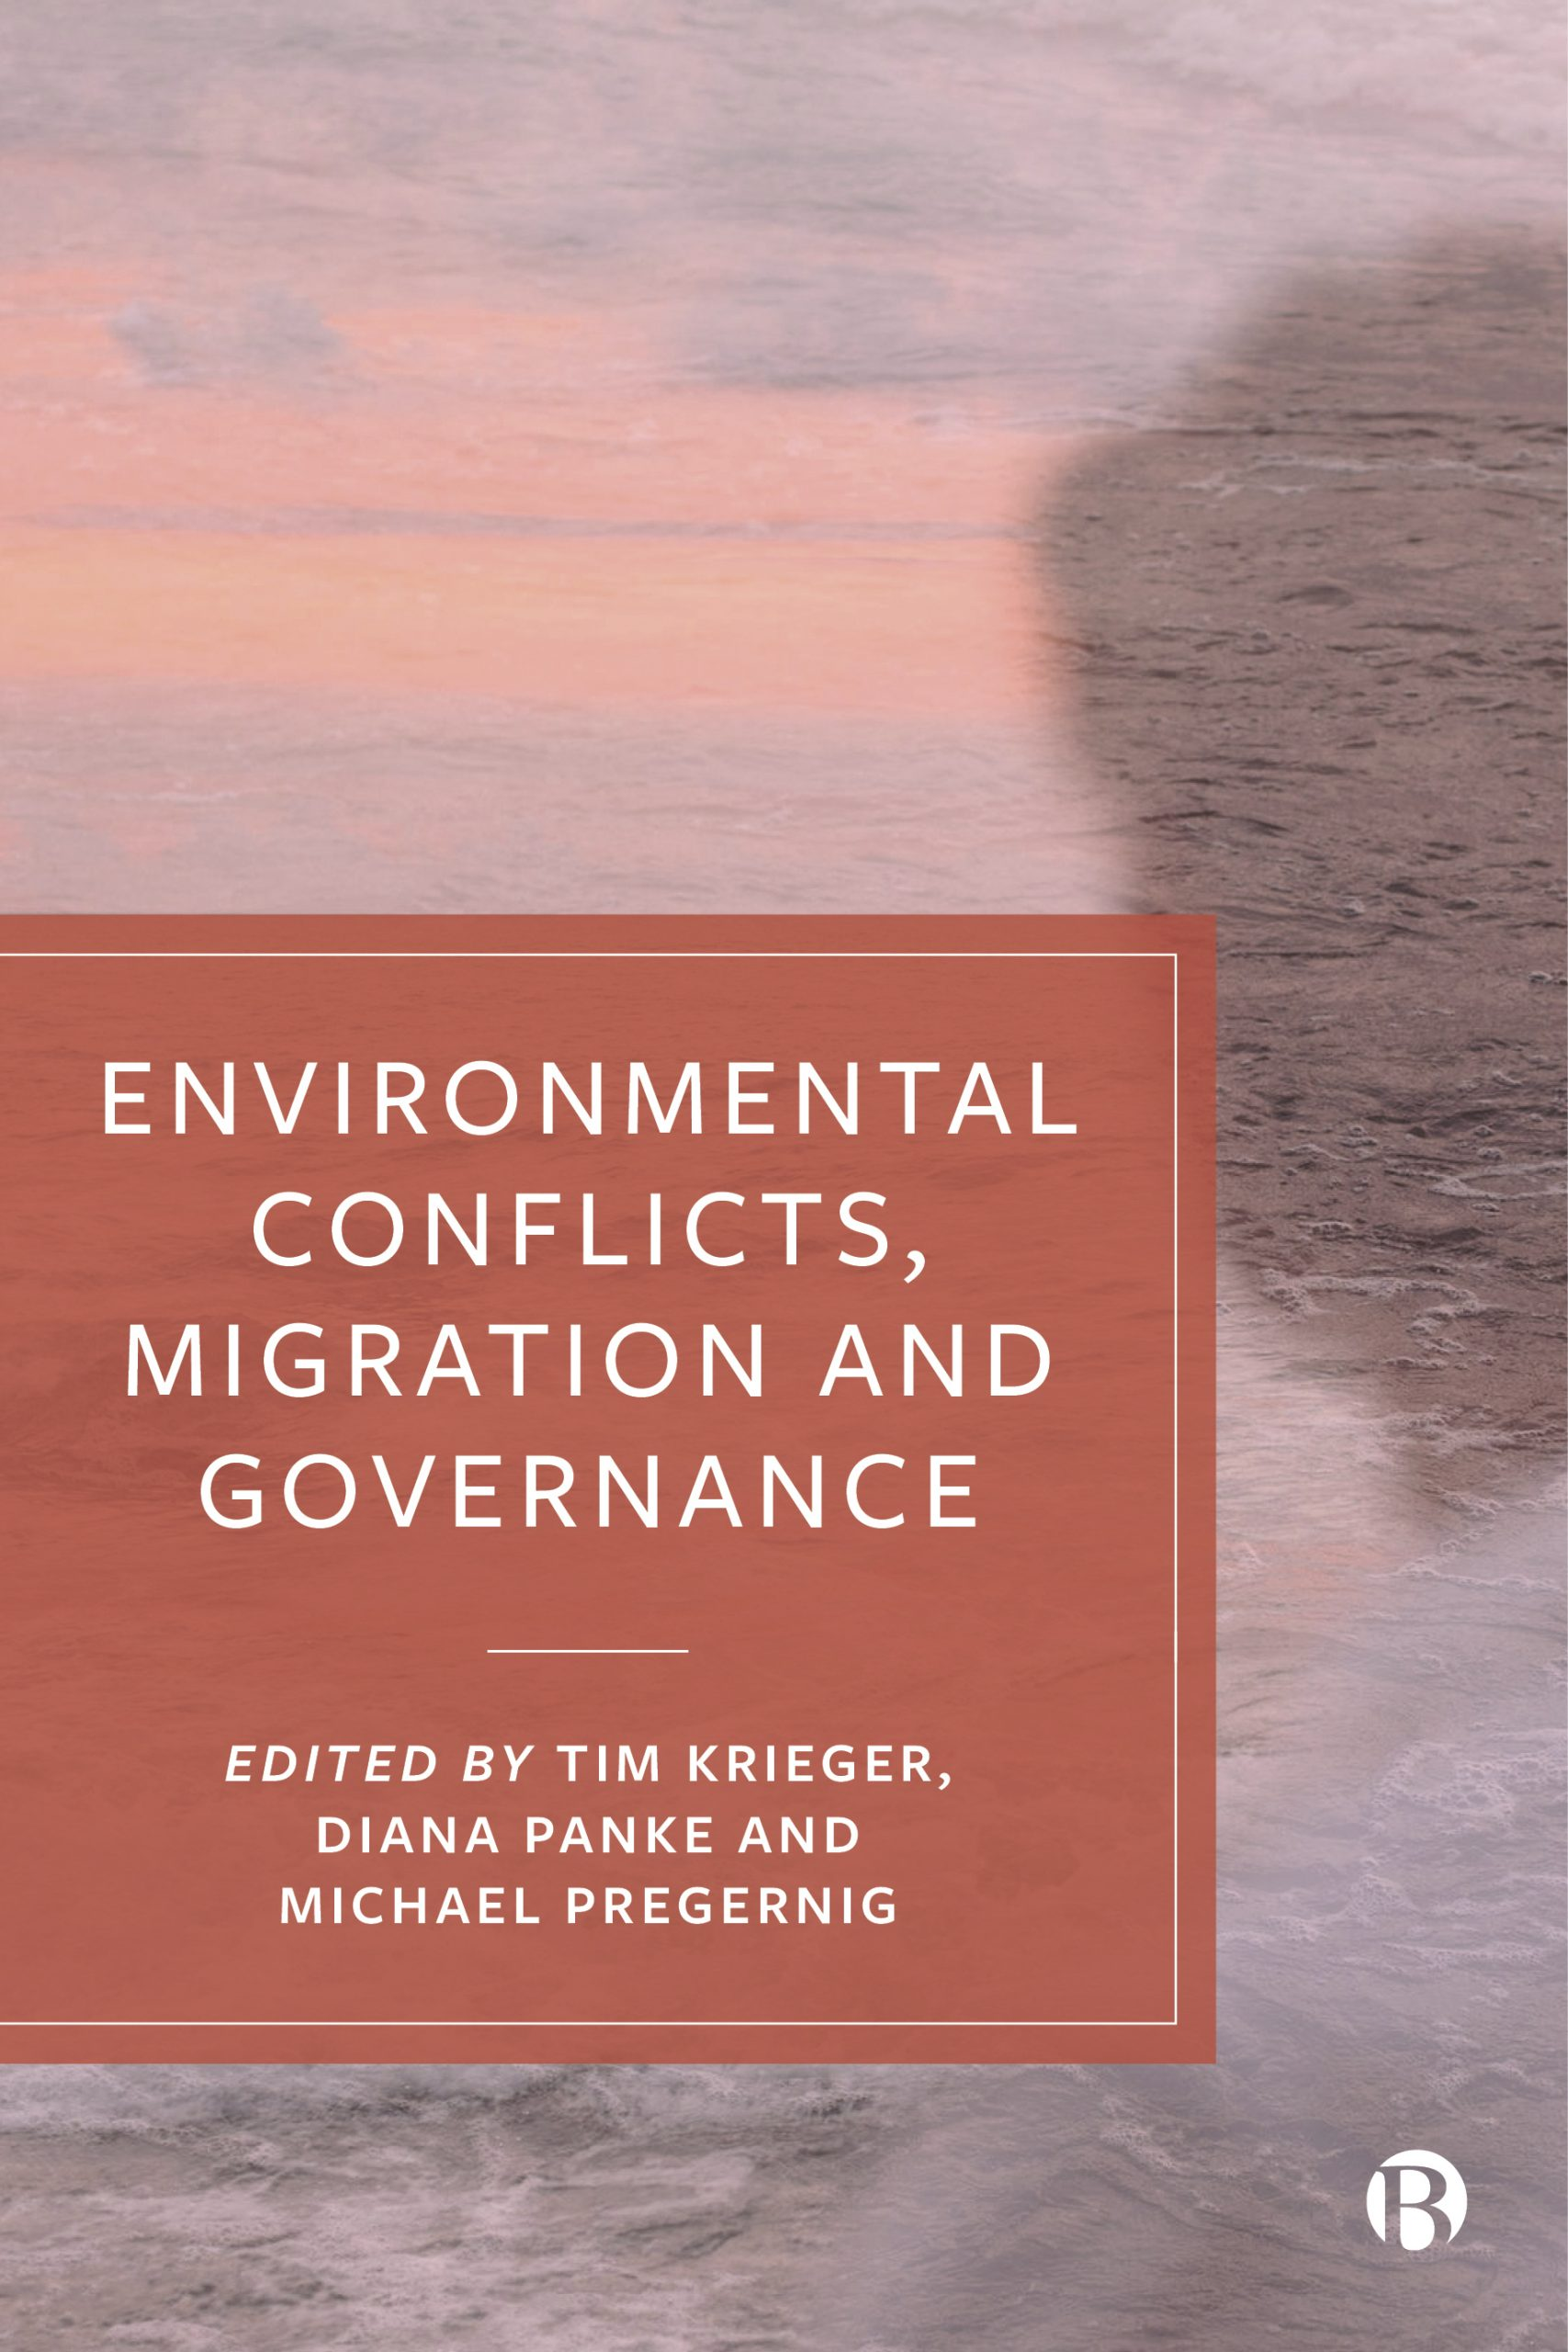 Bristol University Press. Environmental Conflicts, Migration and Governance.